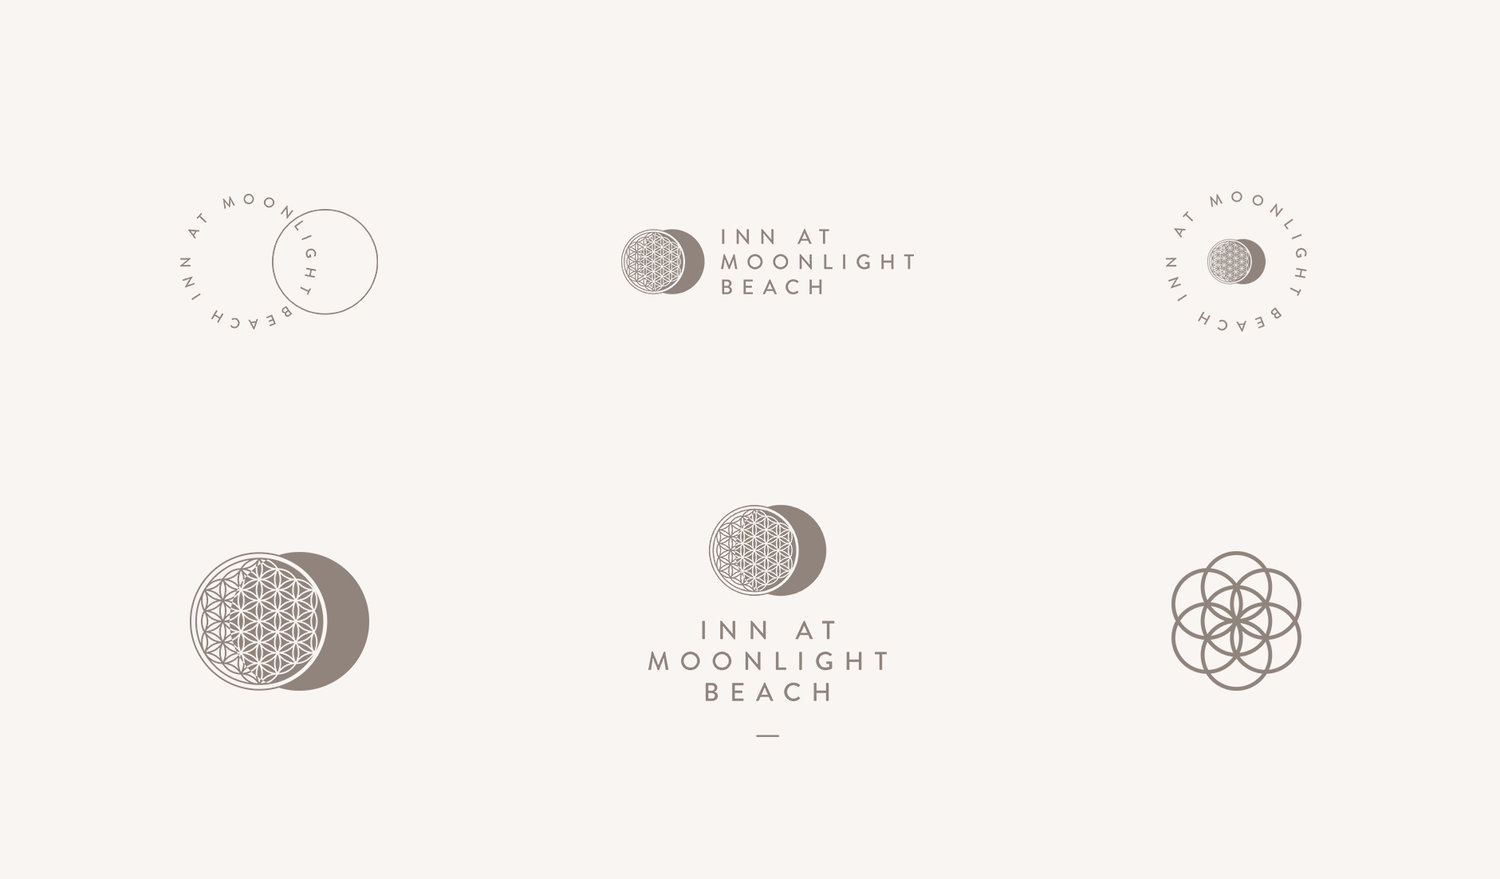 Inn At Moonlight Beach Brand Design 3